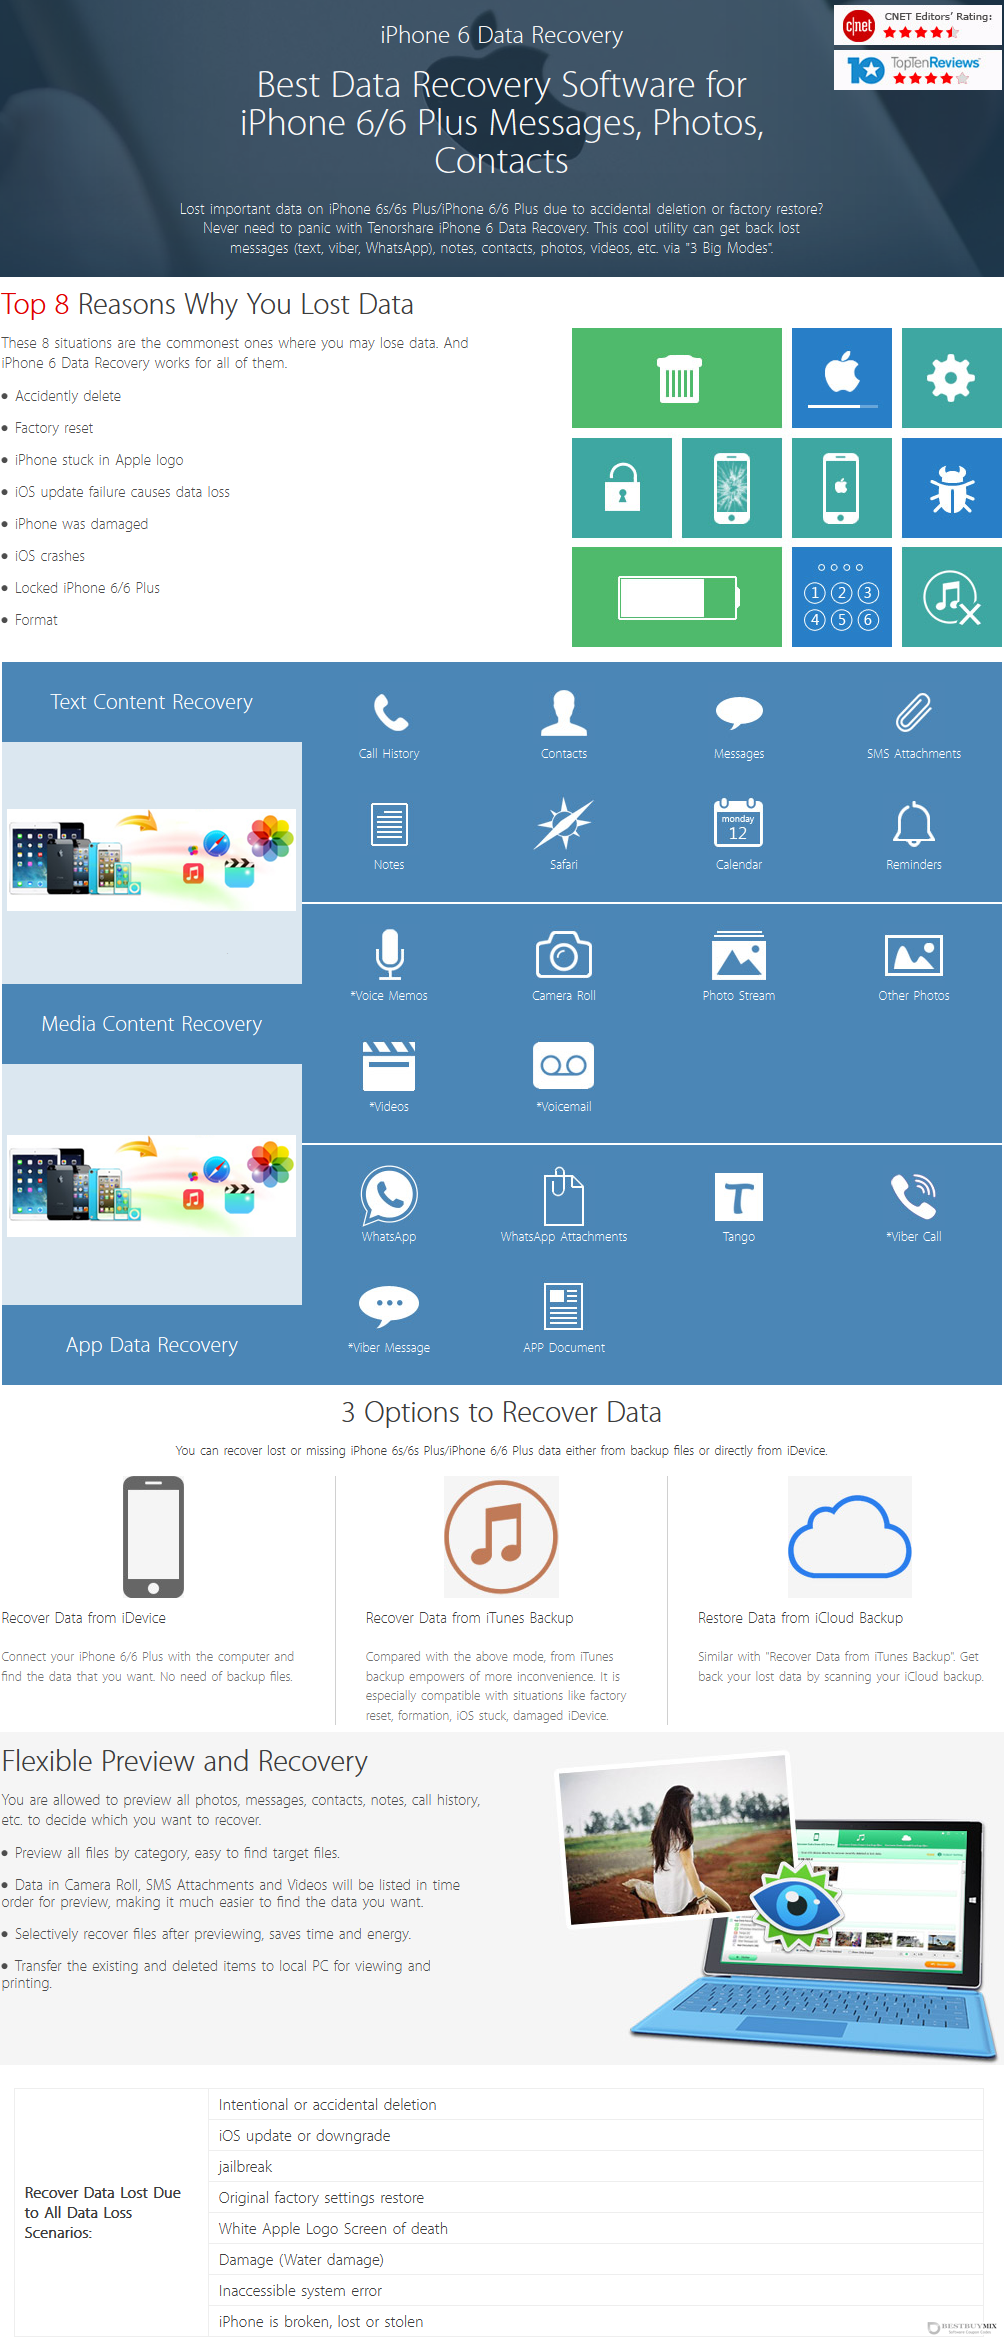 Tenorshare iPhone 6 Data Recovery for Windows Discount Coupon Code